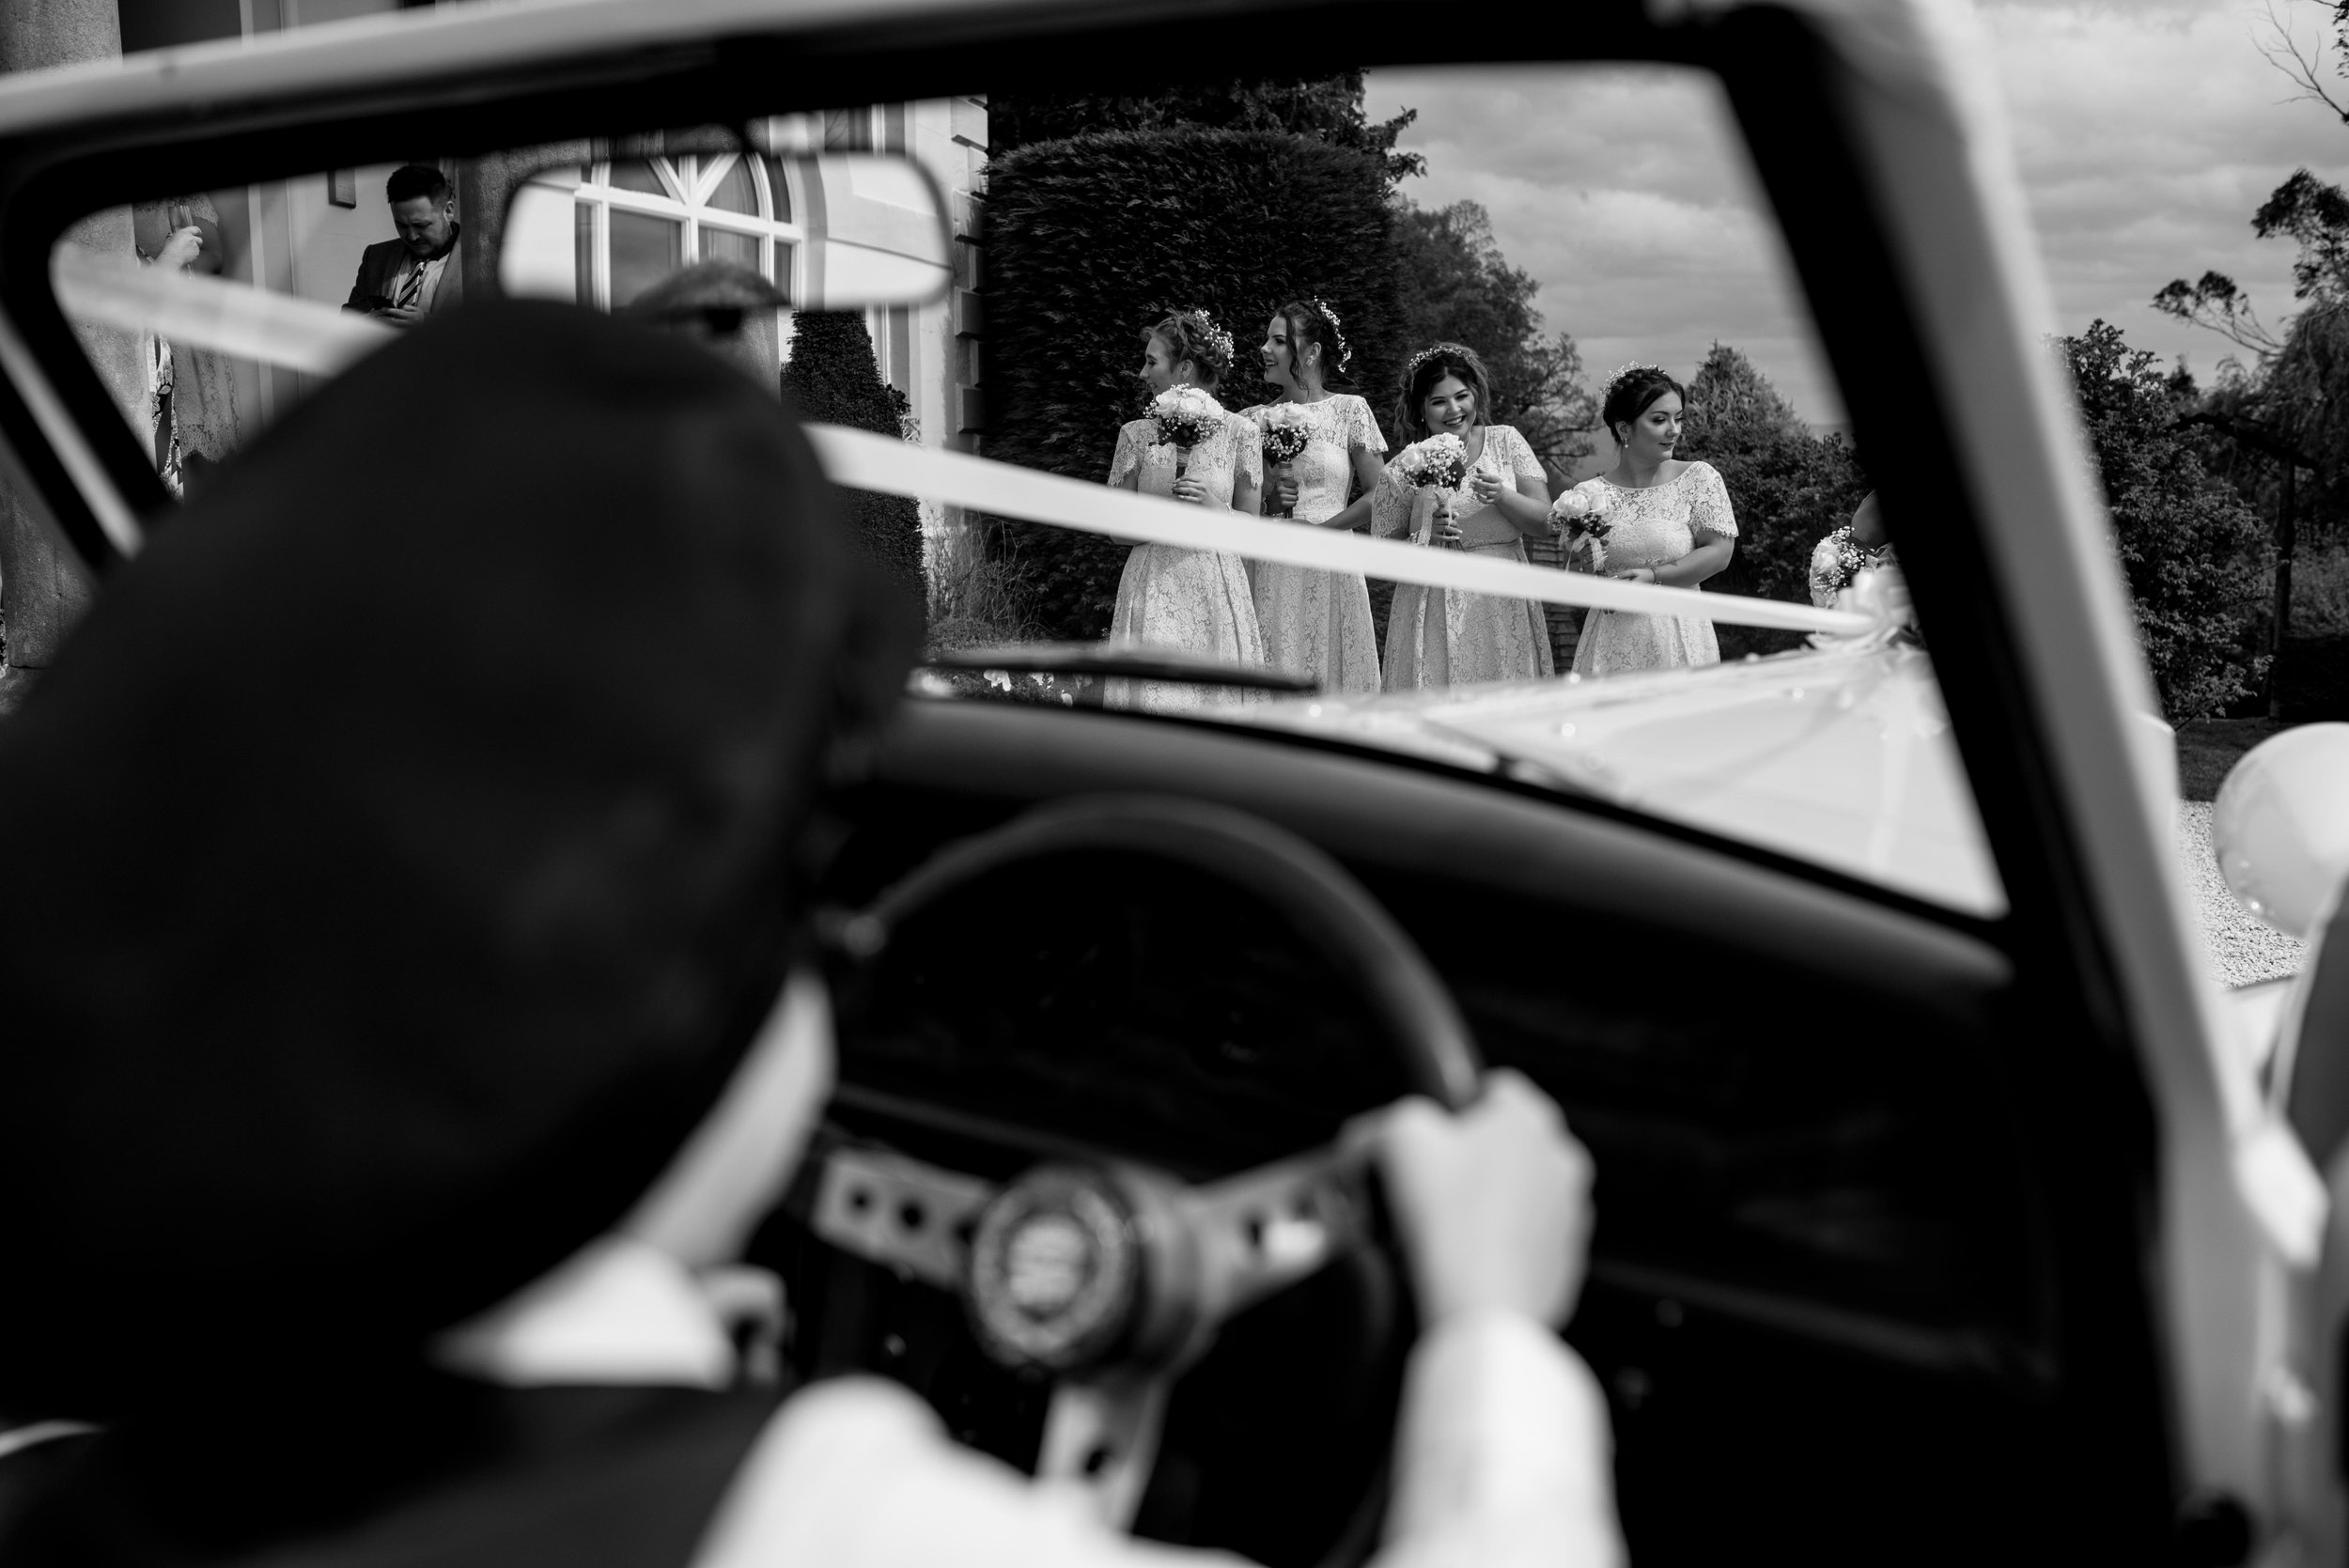 The bridesmaids are laughing as the page boy beeps the wedding car horn at them